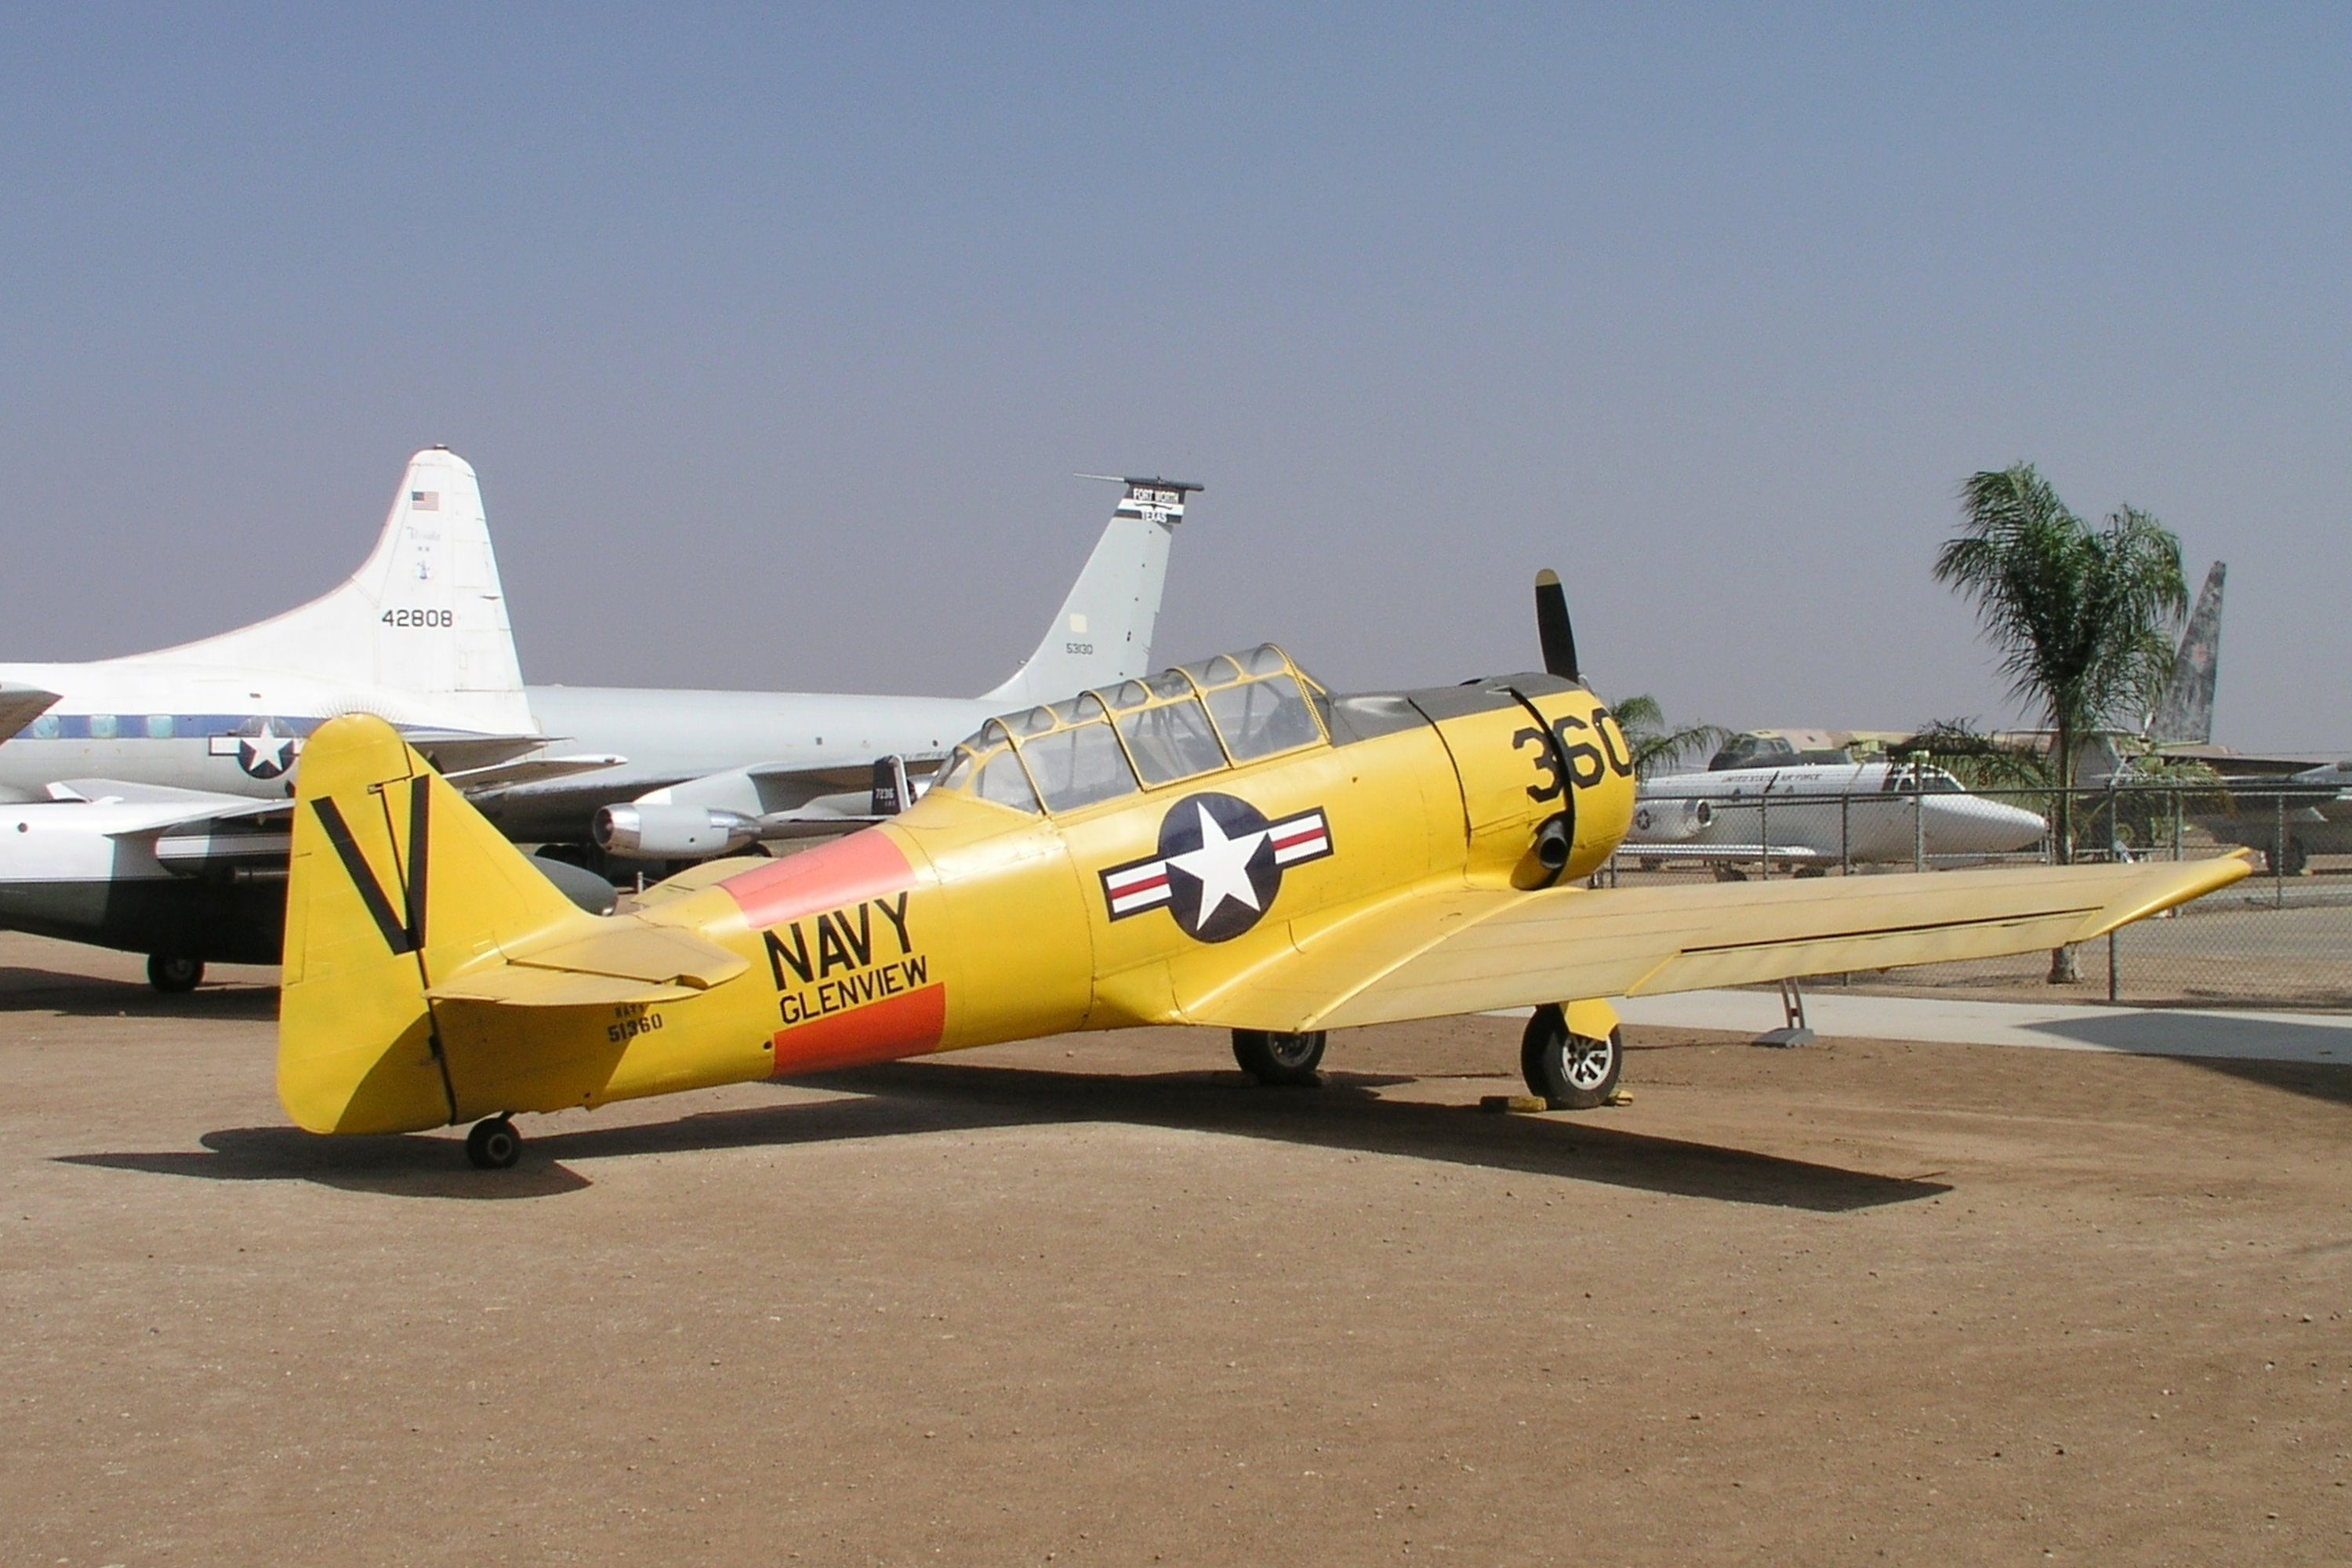 North American SNJ-4 Texan (NA-88) specifications and photos